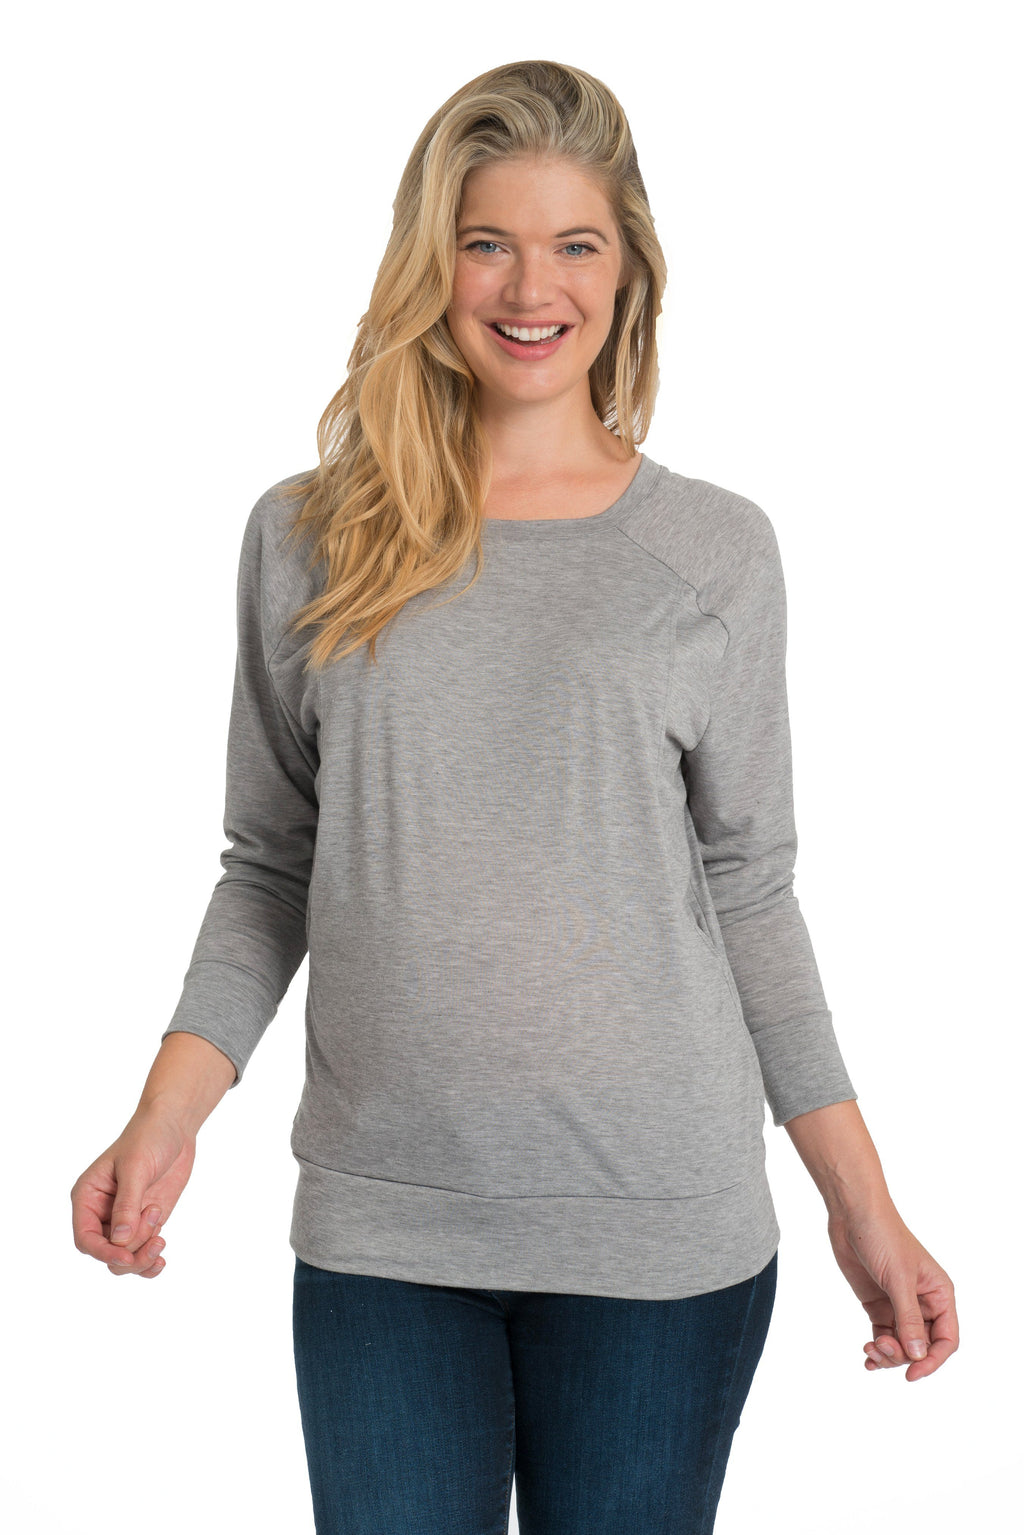 Crossback Longsleeve Nursing Top - 2 Colors, Longsleeve Top, Bun Maternity- Bun Maternity